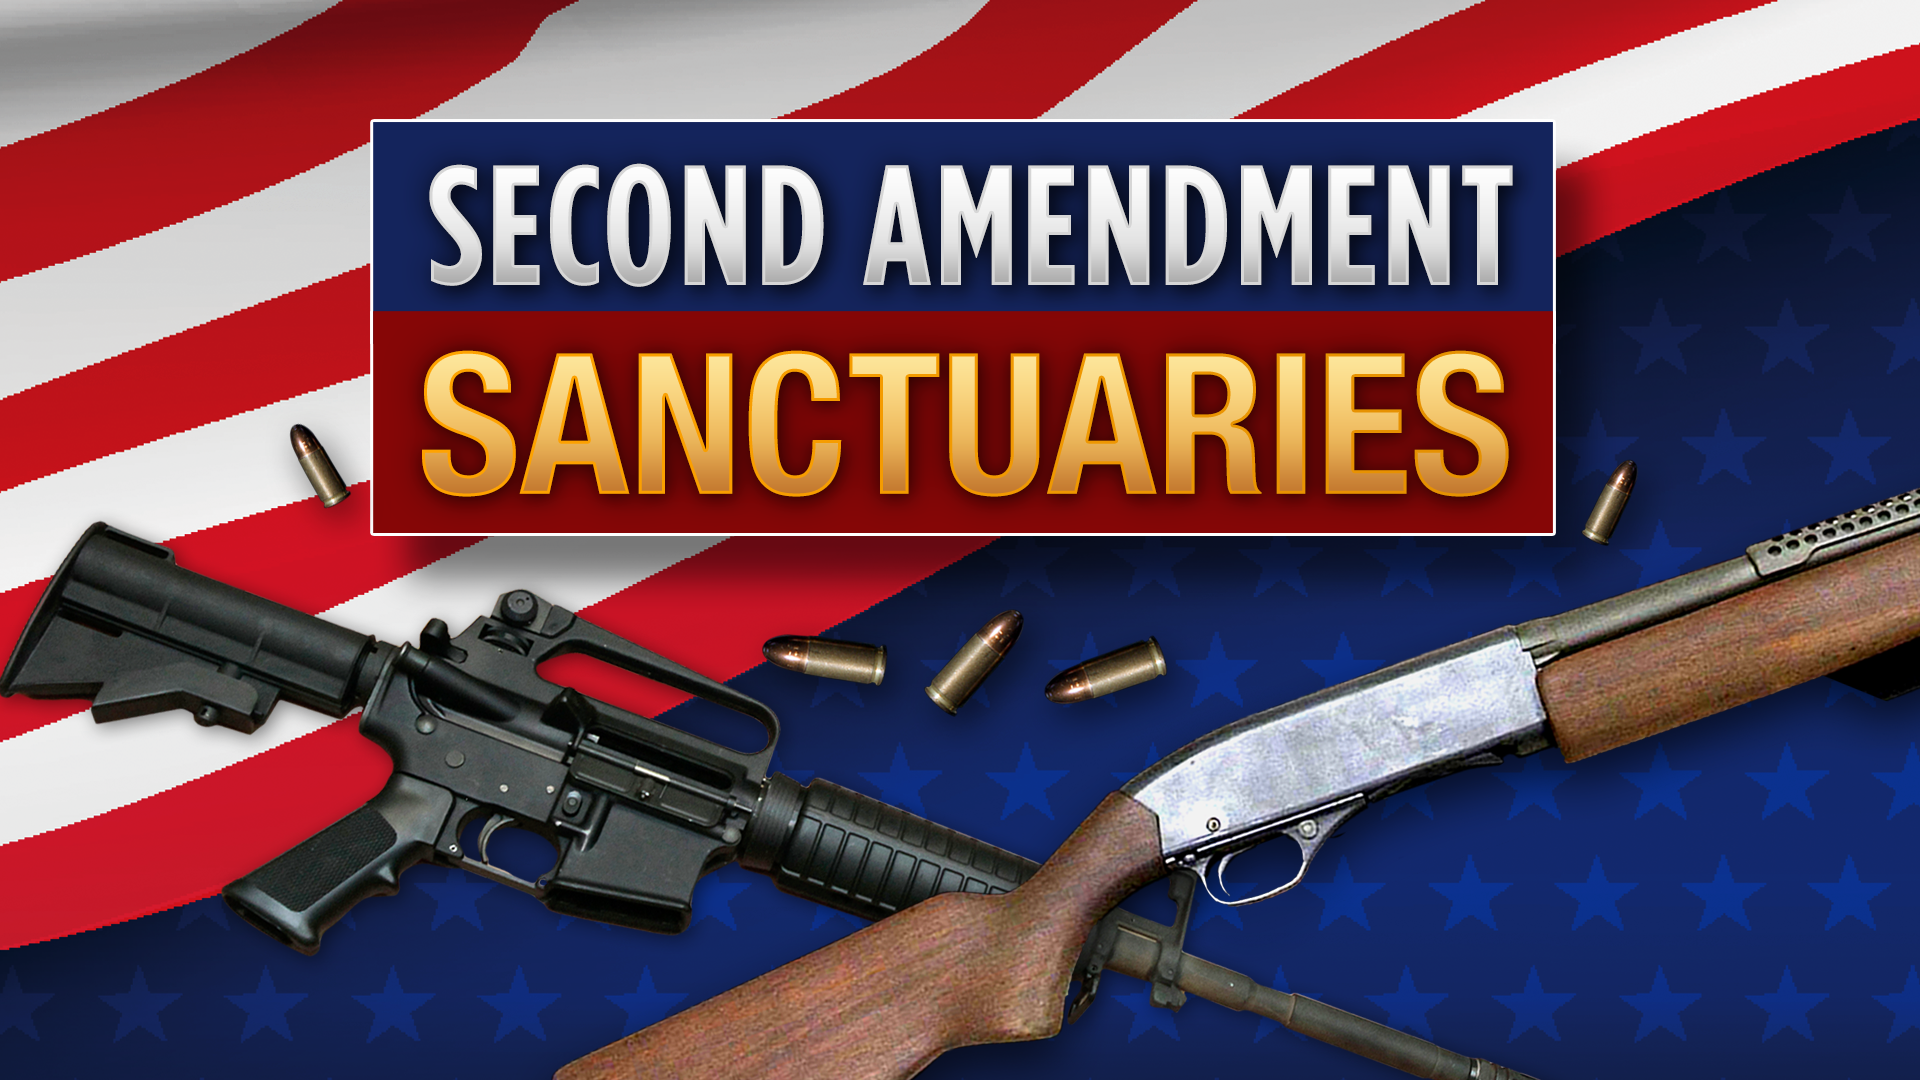 List of Second Amendment sanctuaries in Virginia and where it's being discussed